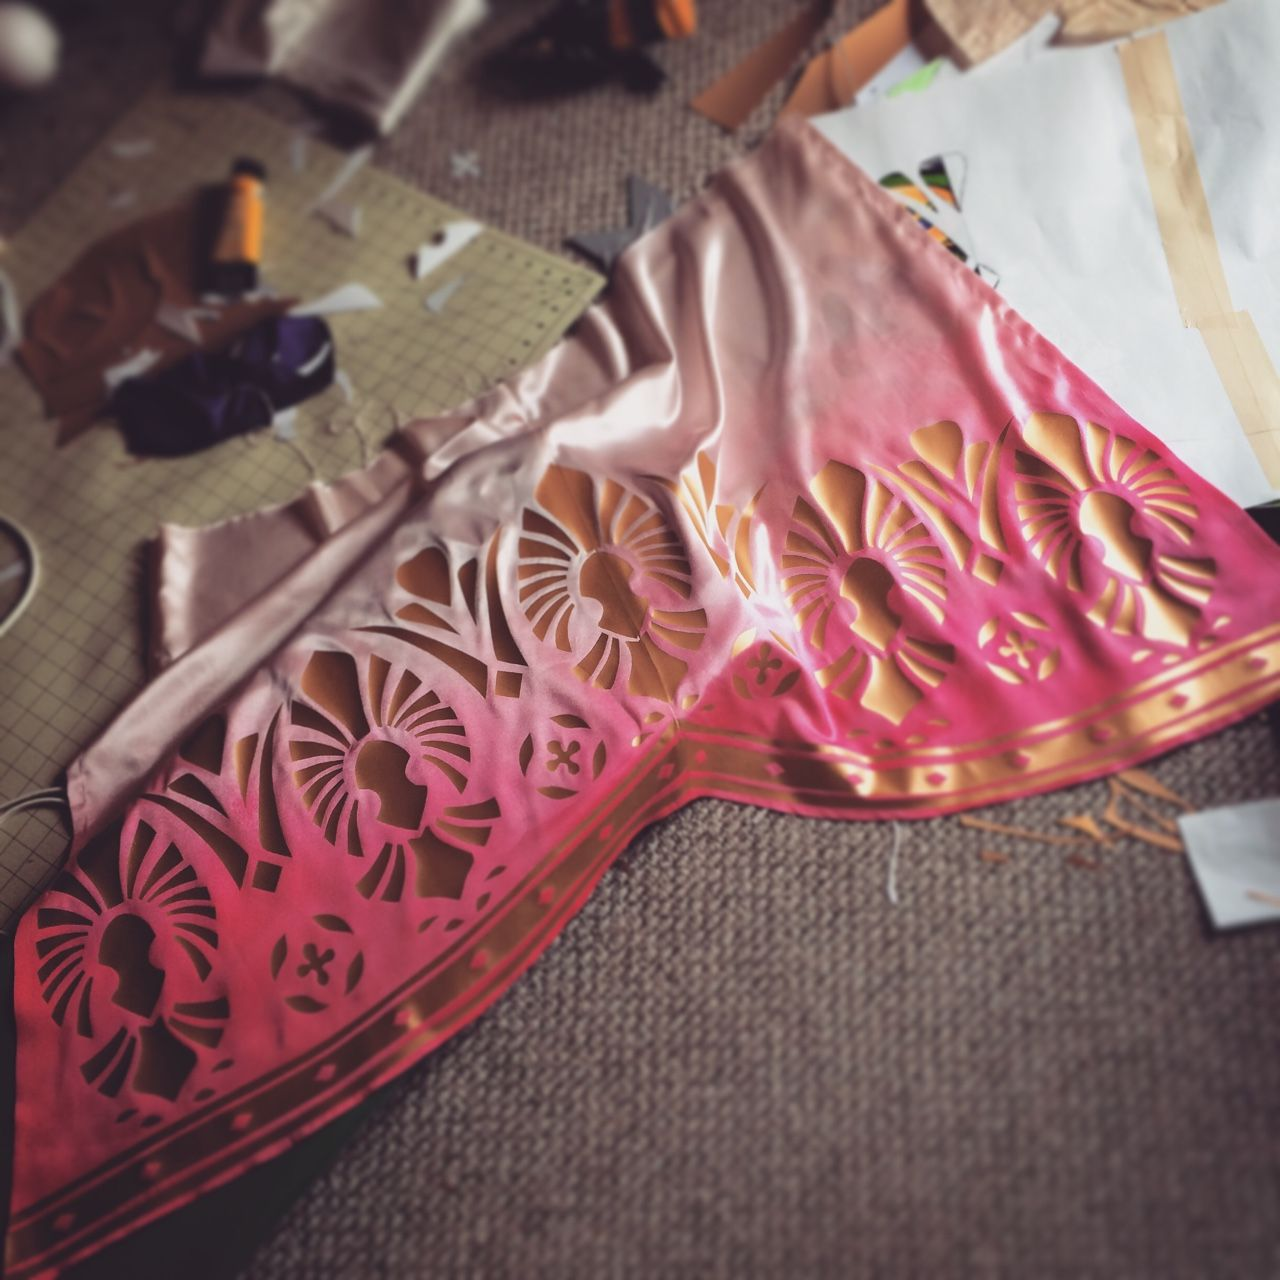 Uncategorized Painting On Vinyl Fabric use heat transfer vinyl to get great  patterns on fabric cosplay